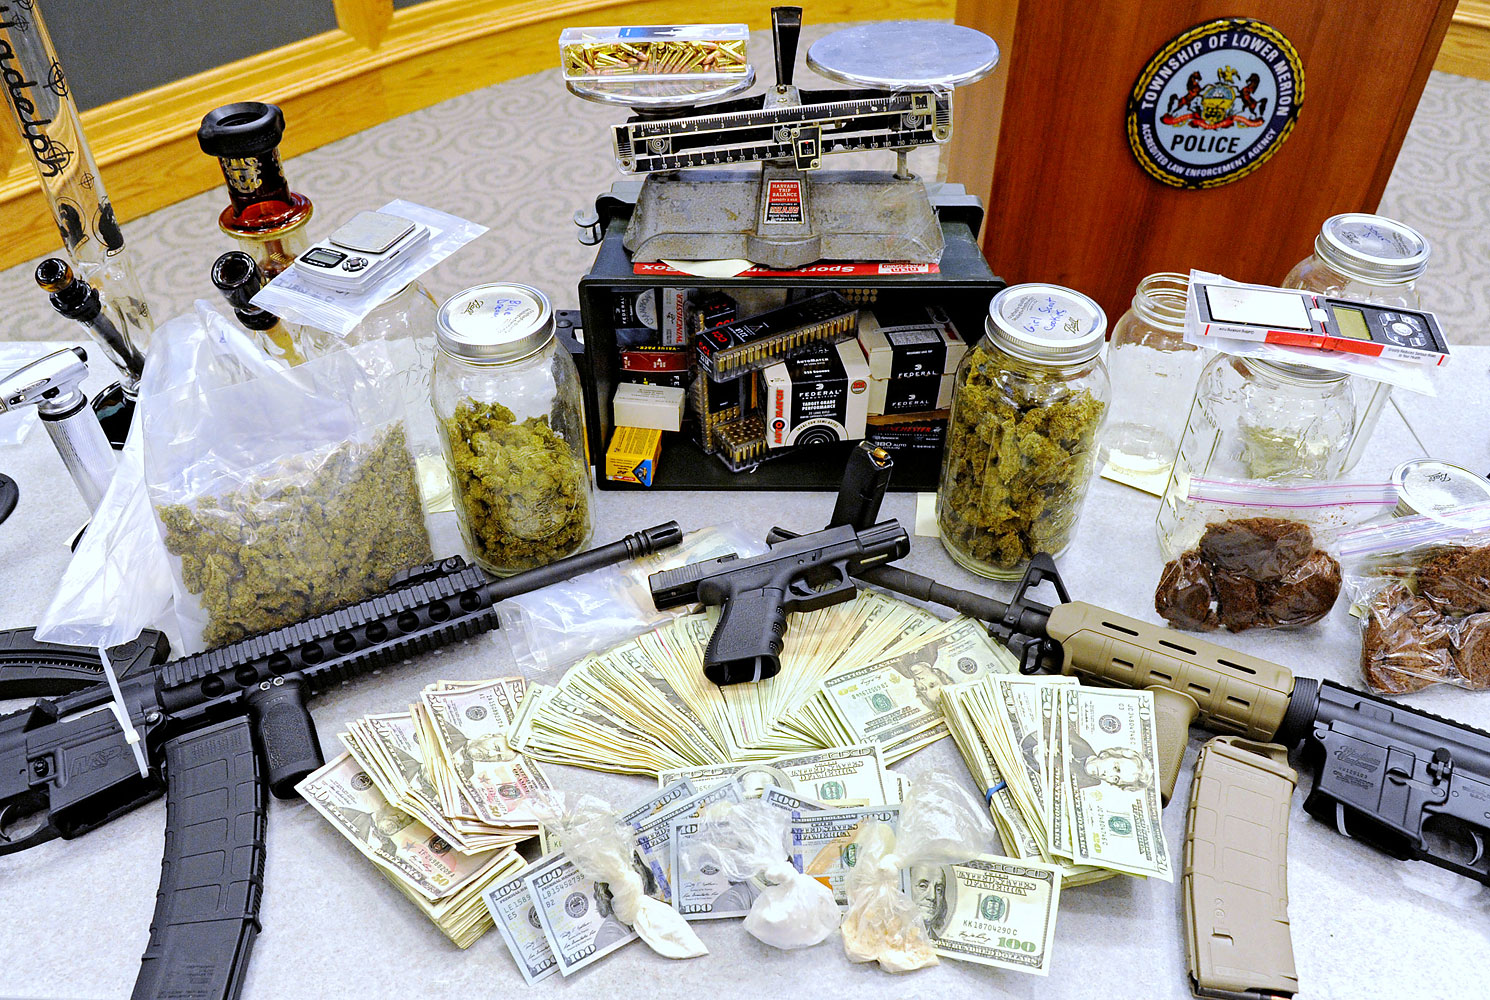 Drugs, guns and other illegal items were seized when Lower Merion Police broke up a drug-distribution ring in Montgomery County, Pa.